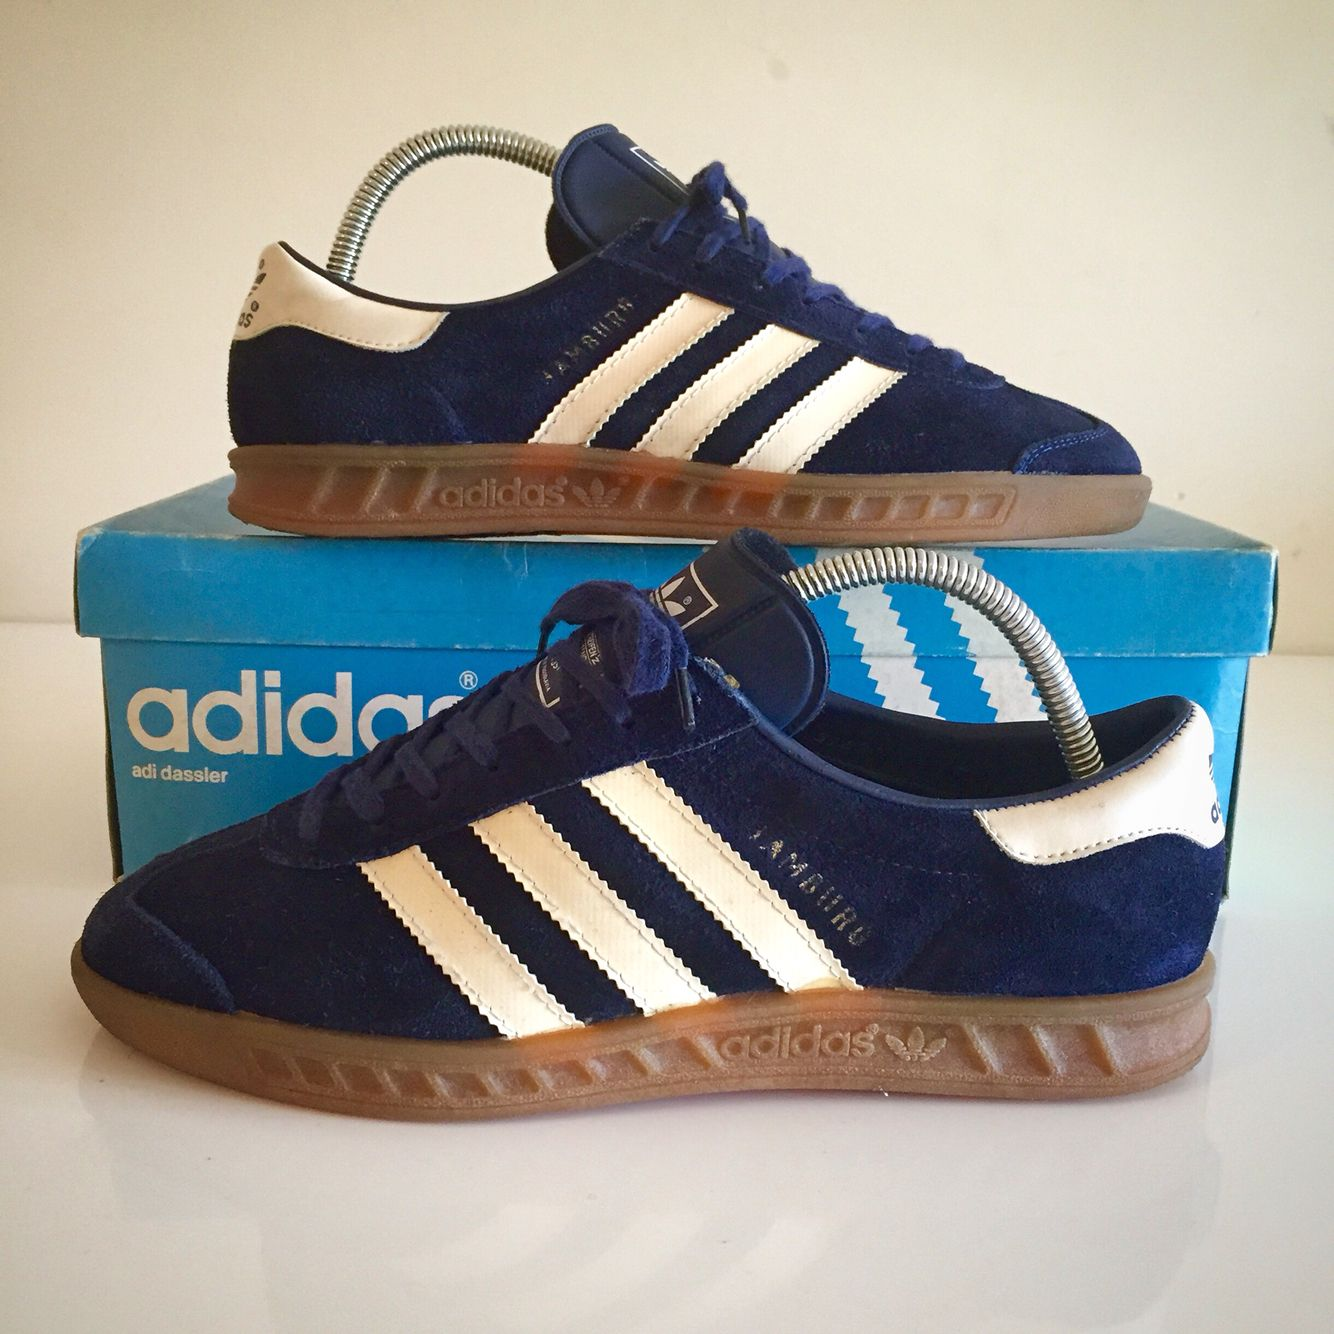 In YugoslaviaShoes Adidas Hamburg 1982 Made 2019 CxBoQderW